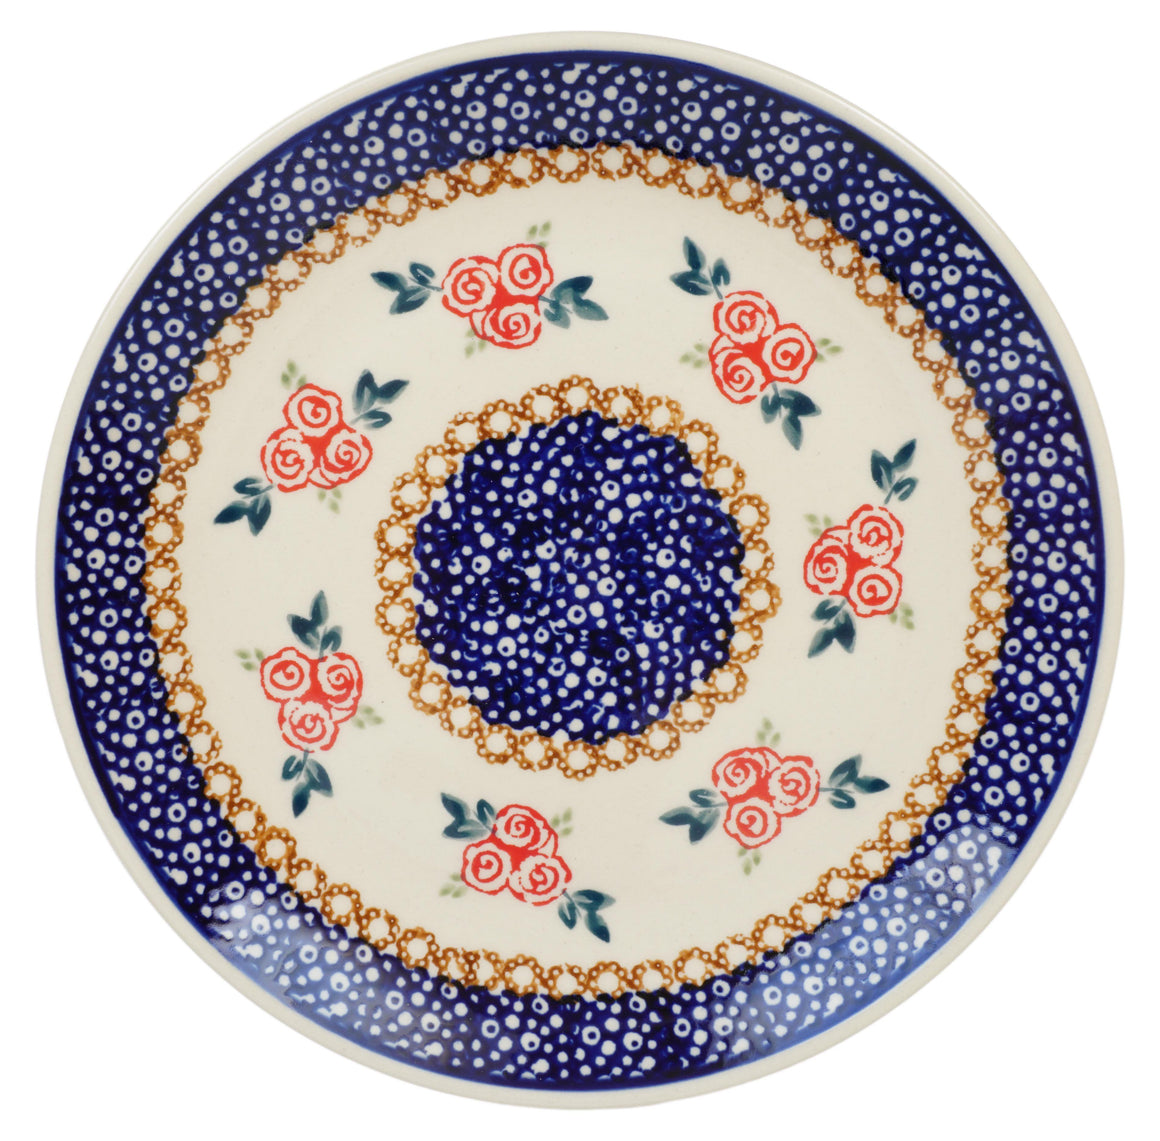 "8.5"" Salad Plate (Parade of Roses)"